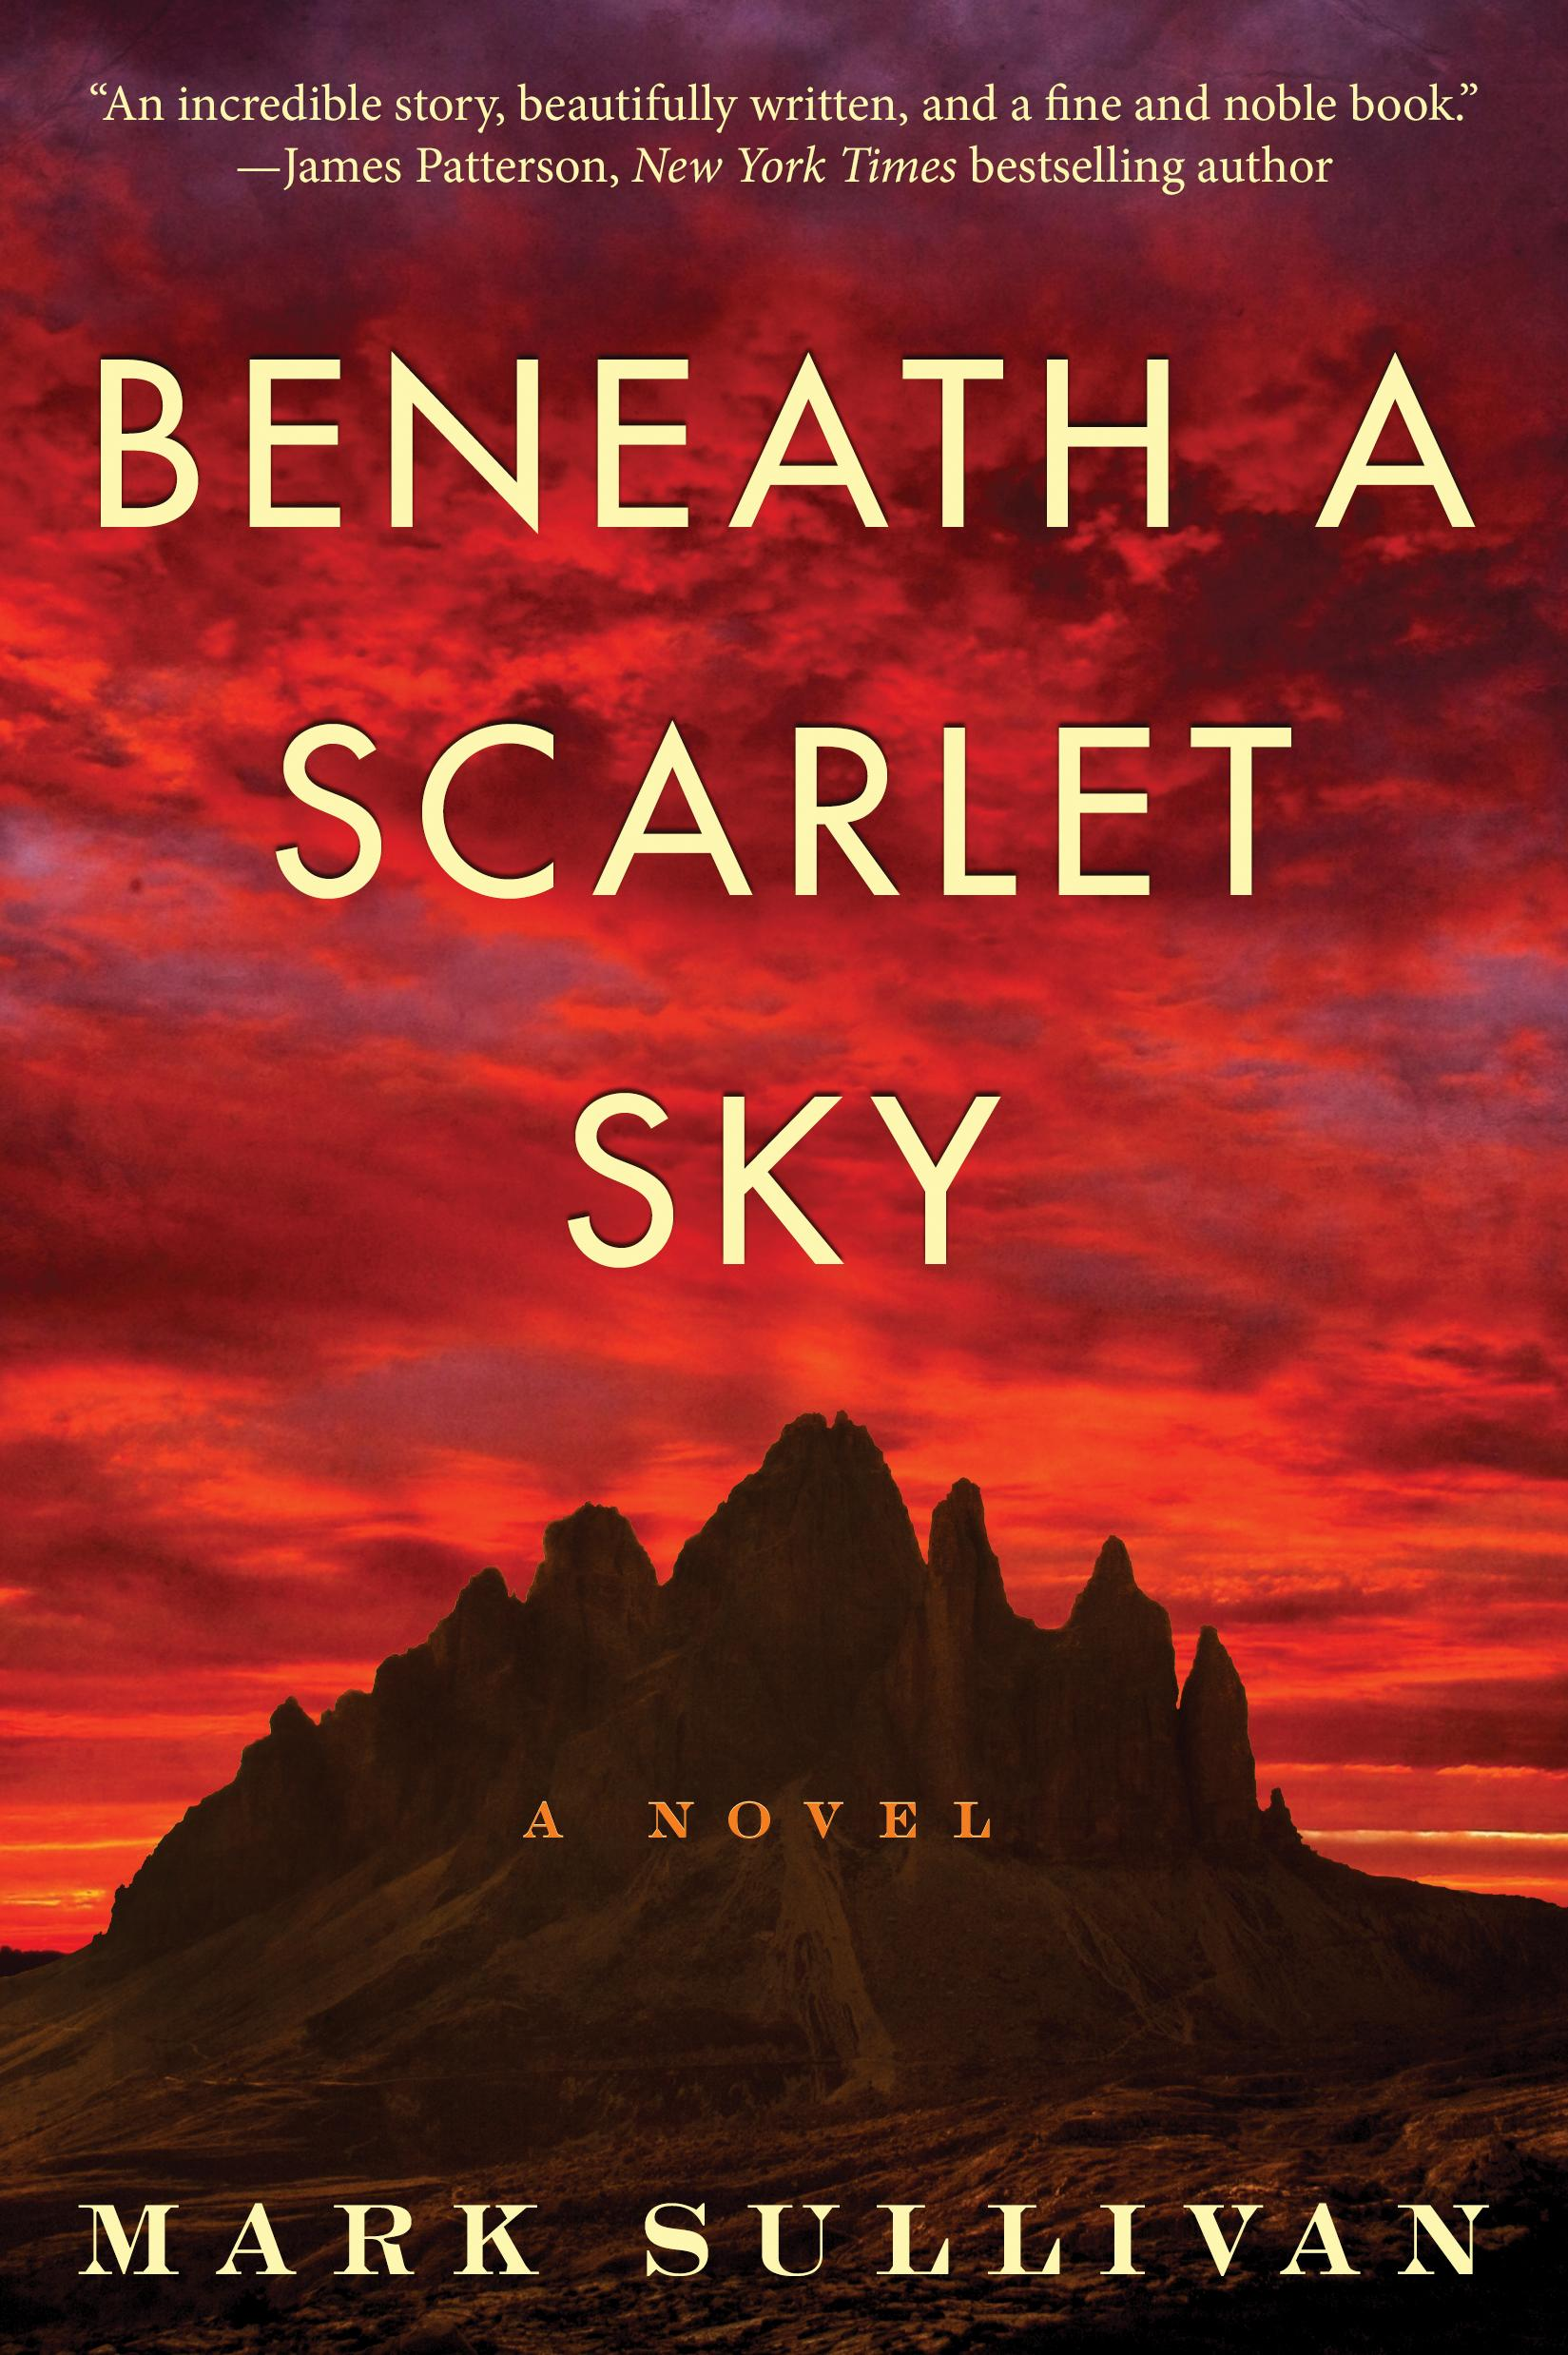 &quot;Beneath a Scarlet Sky&quot; by Mark Sullivan (Image: Courtesy Lake Union Publishing)<p></p>